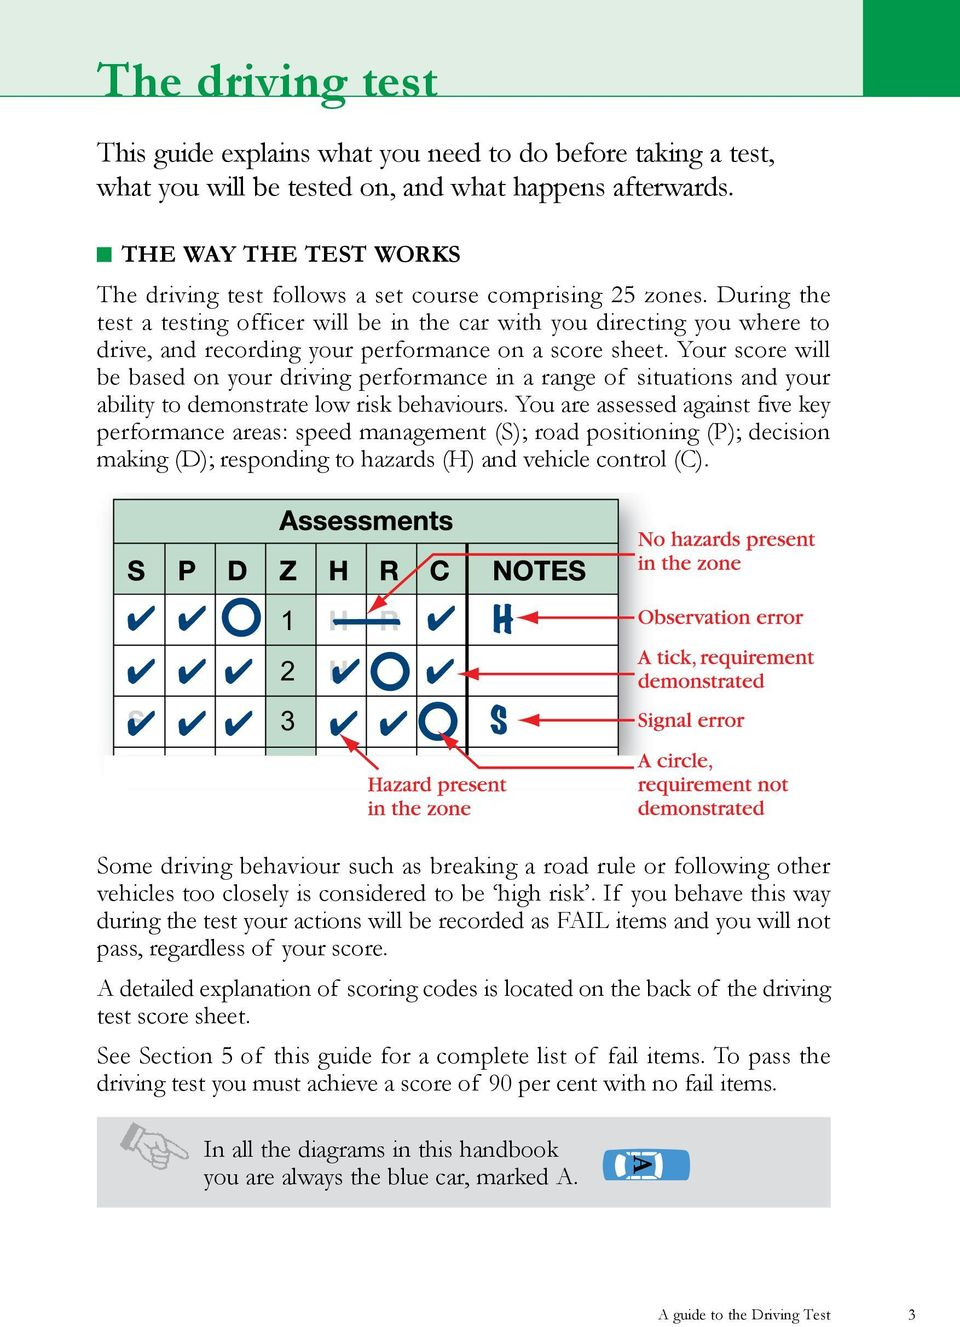 During the test a testing officer will be in the car with you directing you where to drive, and recording your performance on a score sheet.